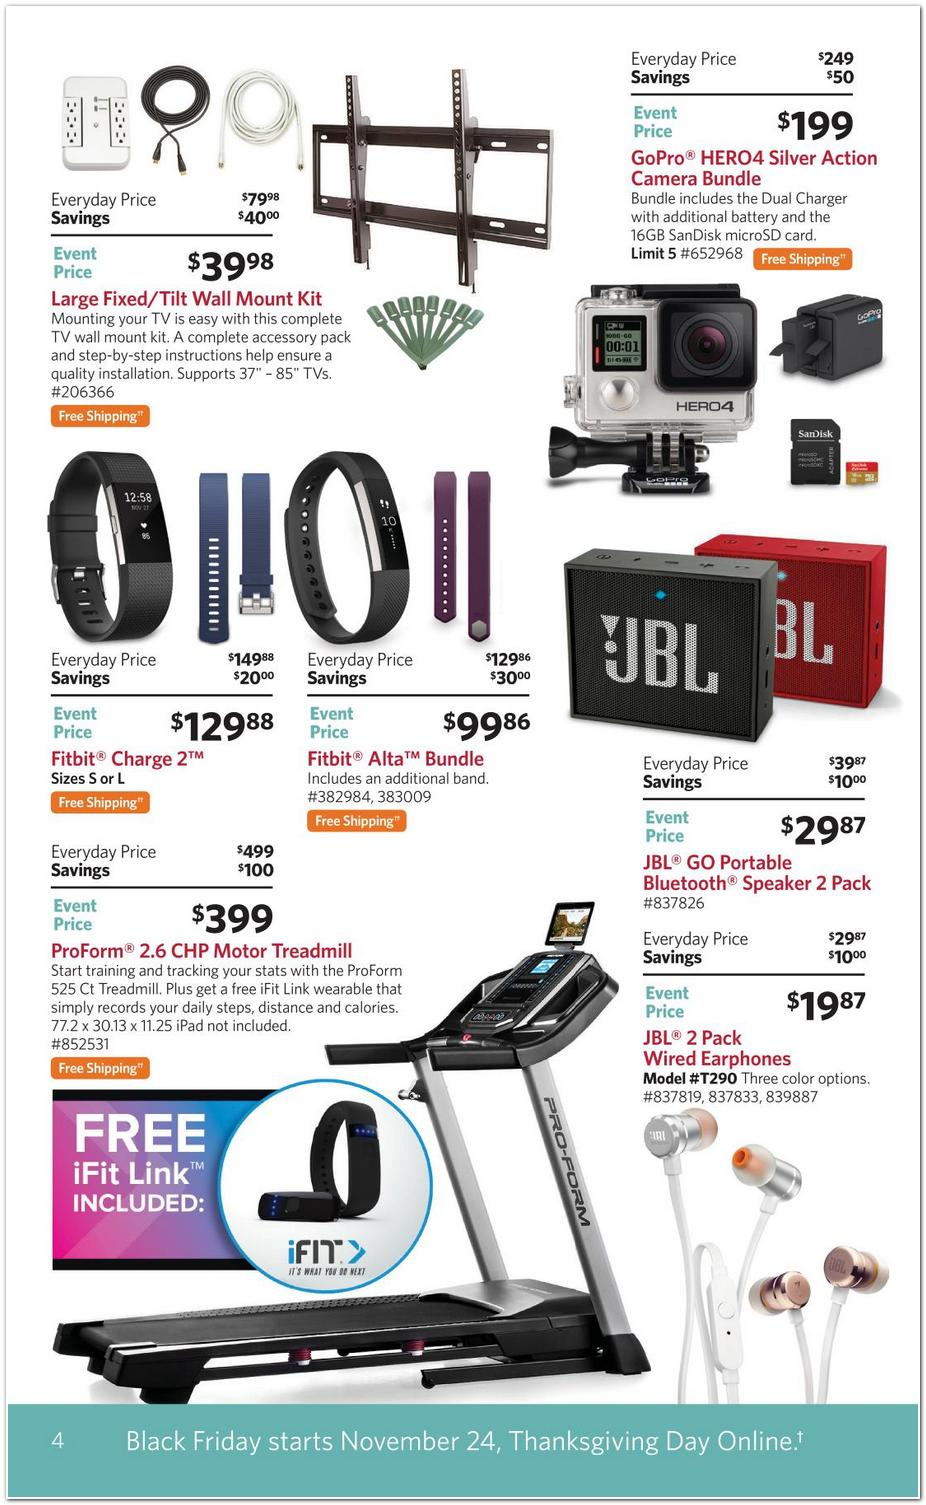 sams-club-black-friday-2016-ad-scan-p-4